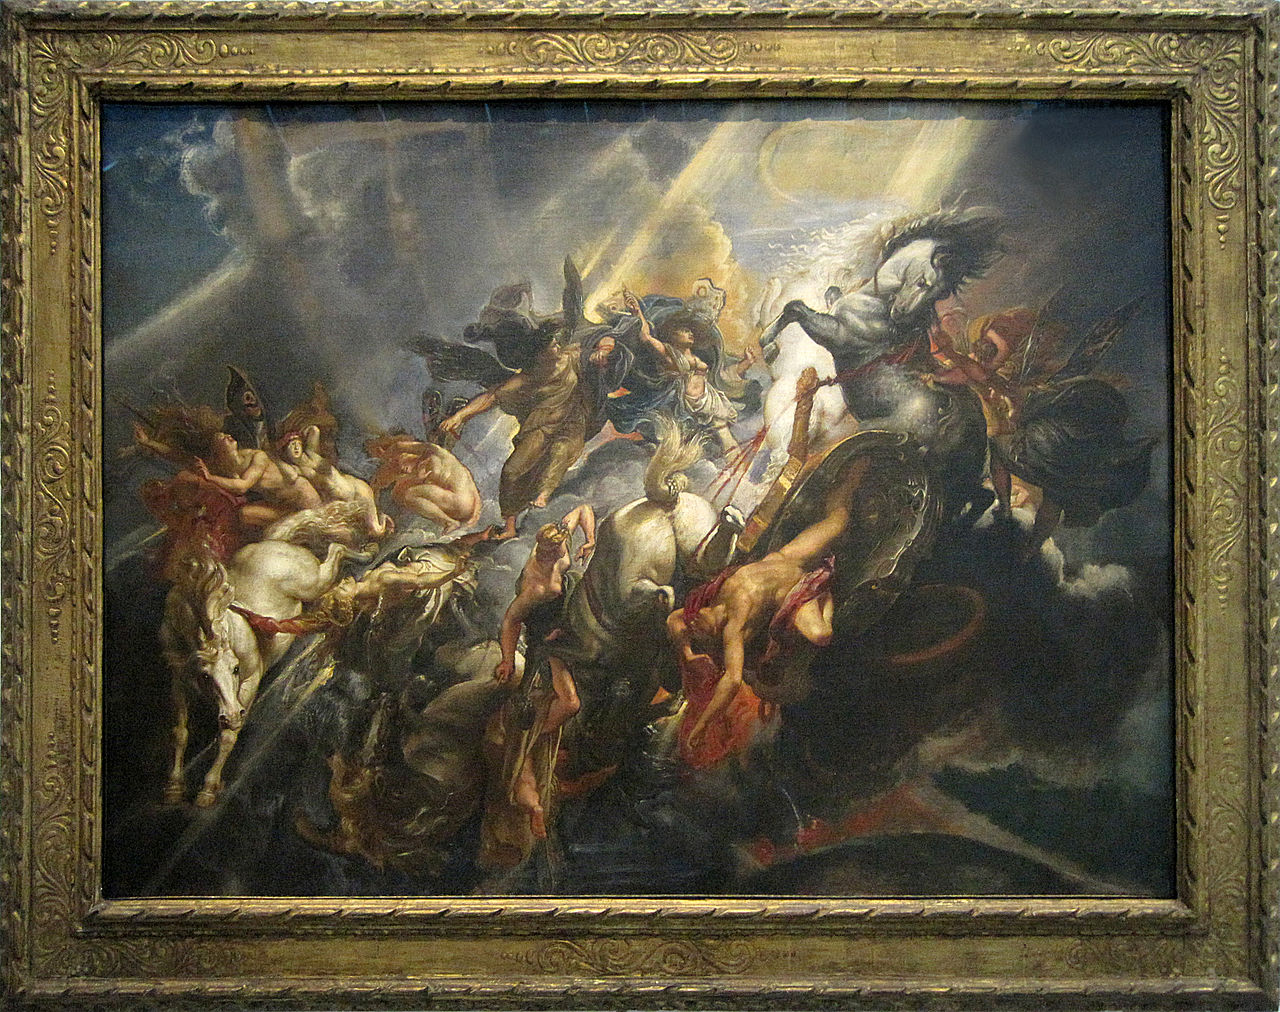 1280px-La_Chute_de_Phaéton_-_Pierre_Paul_Rubens_-_National_Gallery_of_Art_-_(1a)